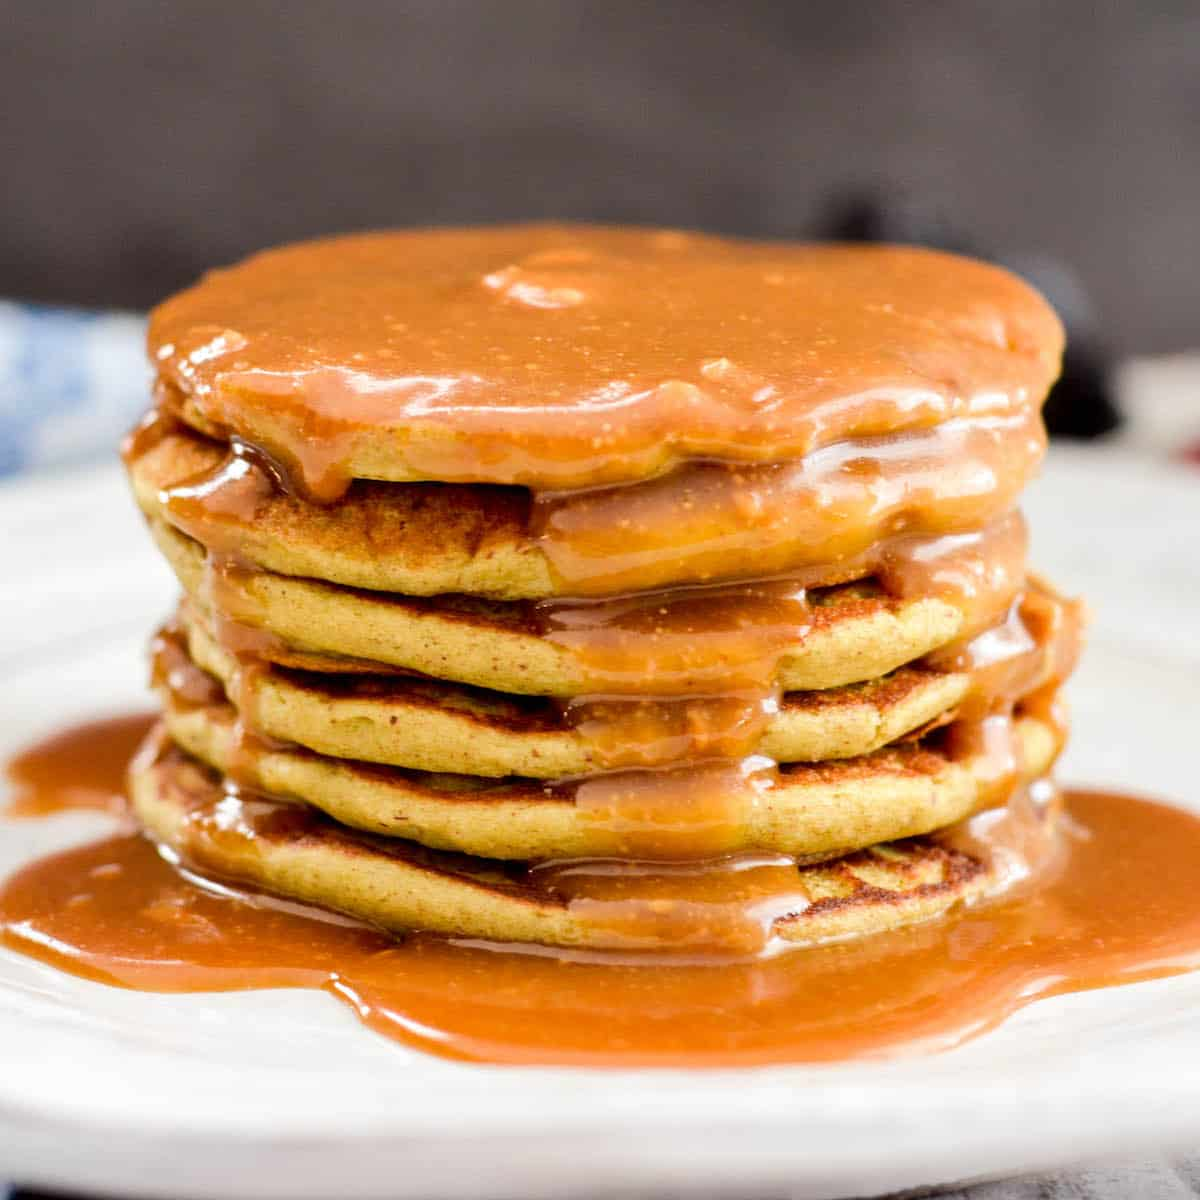 Front view of a stack of six Zucchini Banana Pancakes with maple syrup dripping down the top and sides.